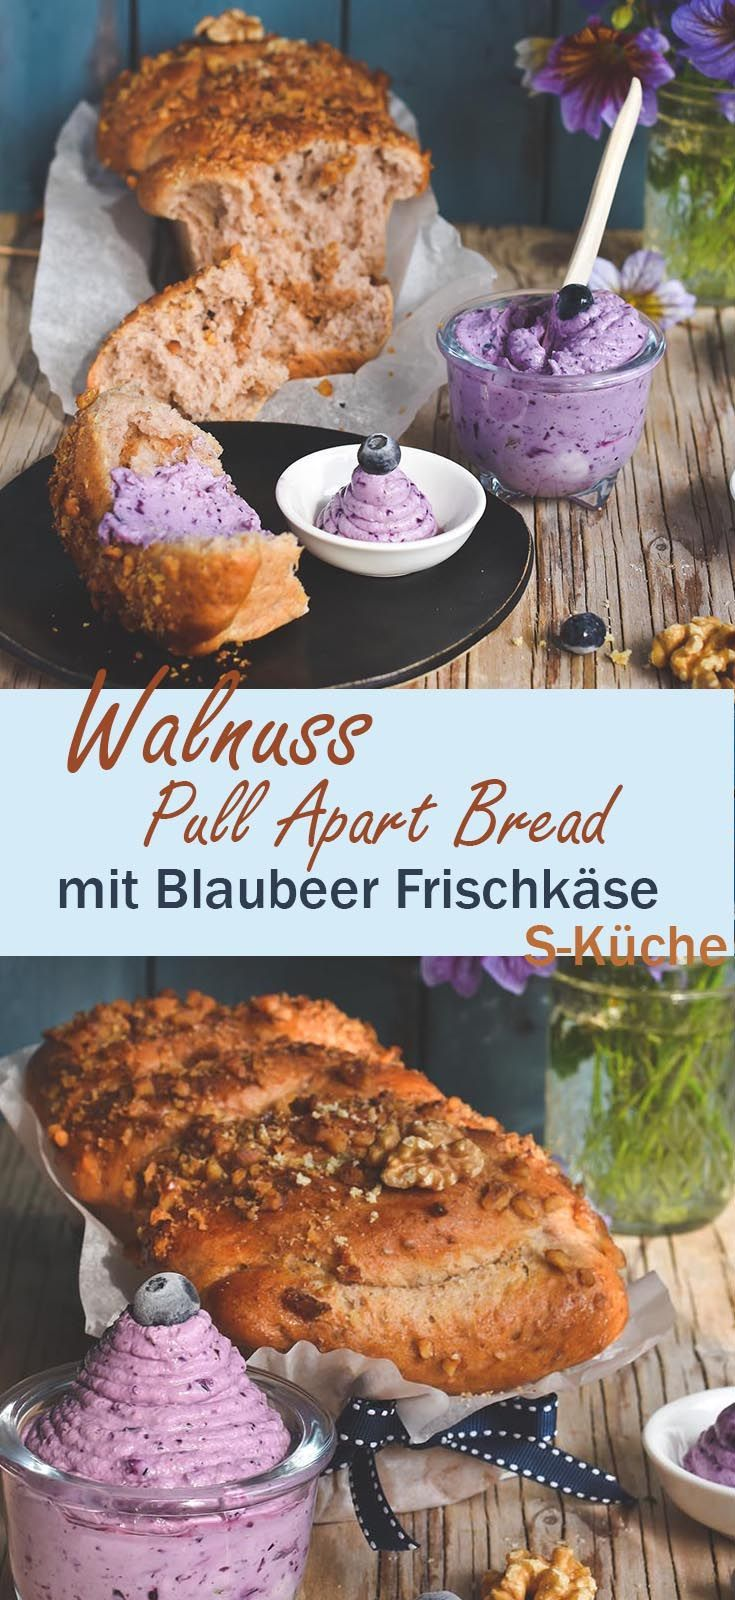 Walnuss Zupfbrot mit Blaubeer Frischkäse - Maple Walnut Pull Apart Bread and Blueberry Cream Cheese